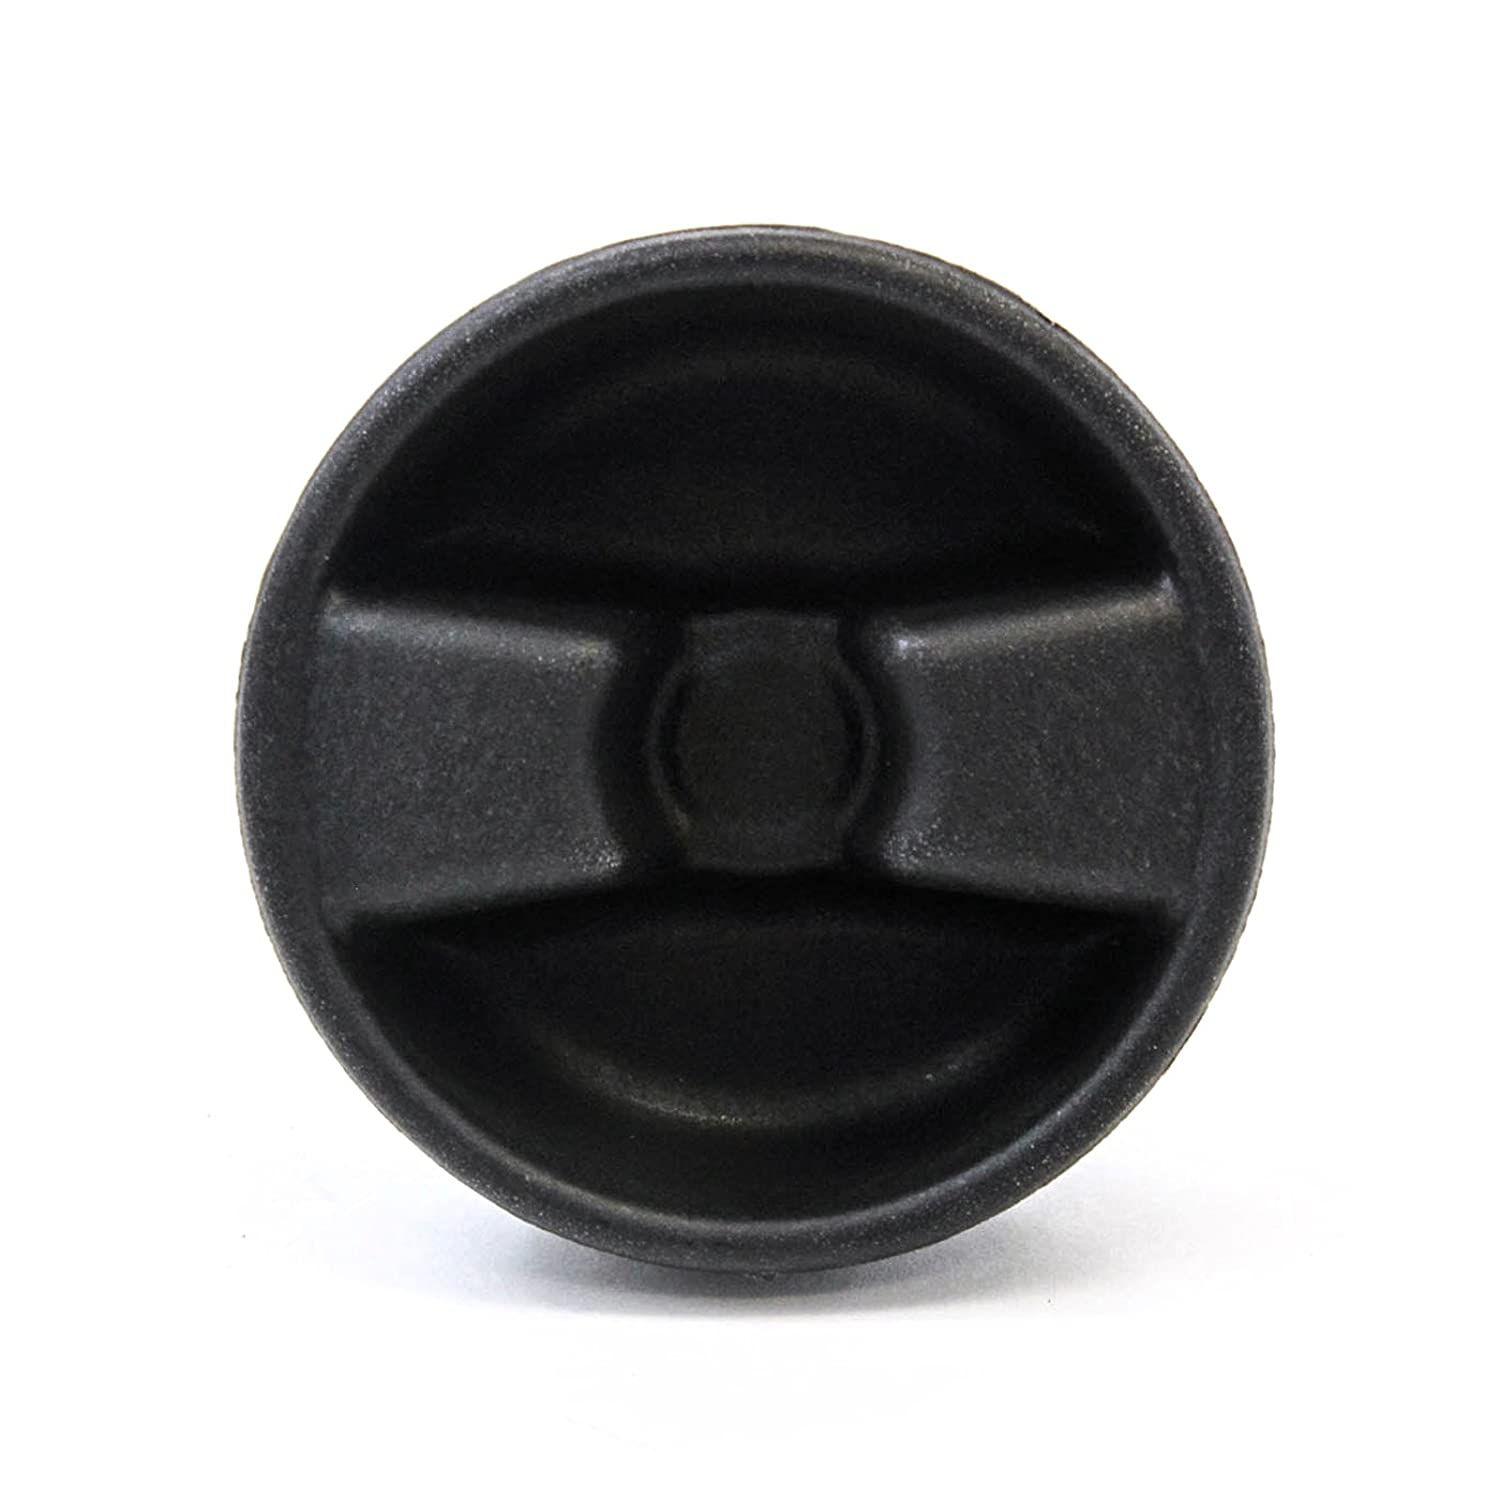 Red Hound Auto Freedom Hardtop Top Hard Panel Mounting Knob Replacement Screw 1 pc 2007-2018 Compatible with Jeep Wrangler JK 2dr and Unlimited 4dr